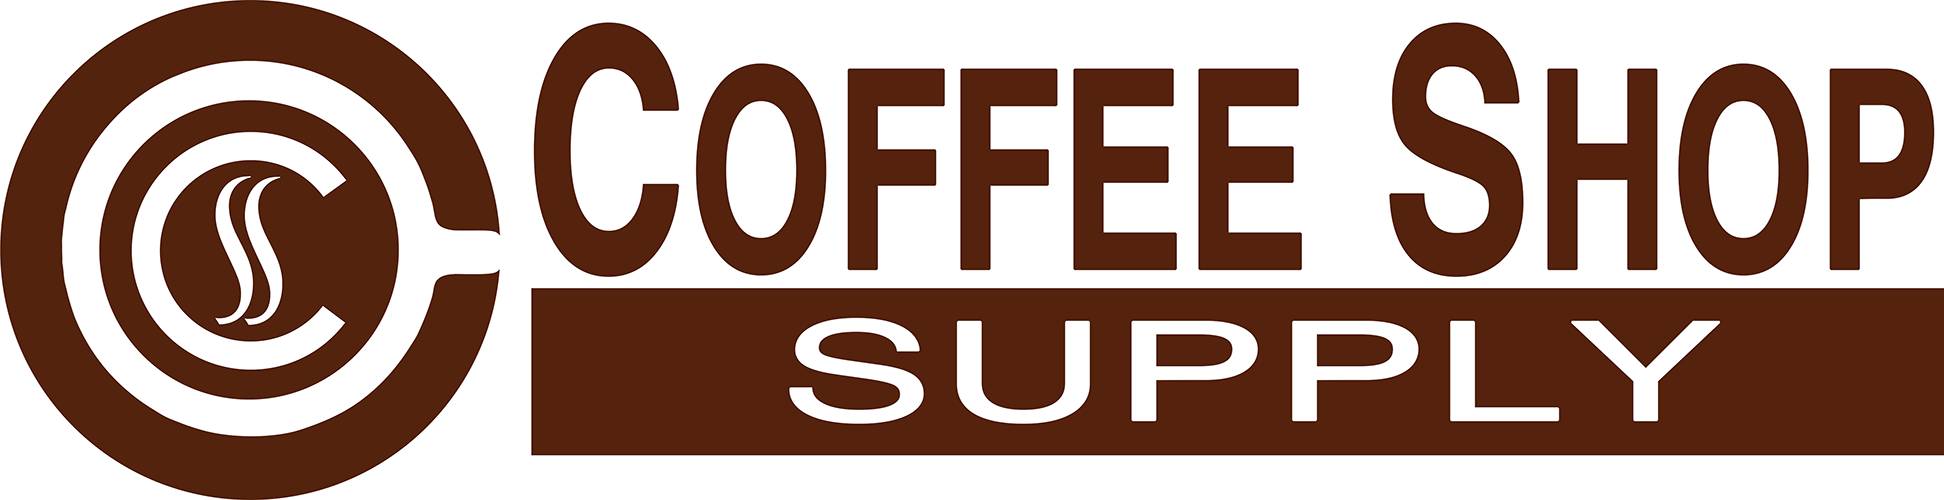 Coffee Shop Supply